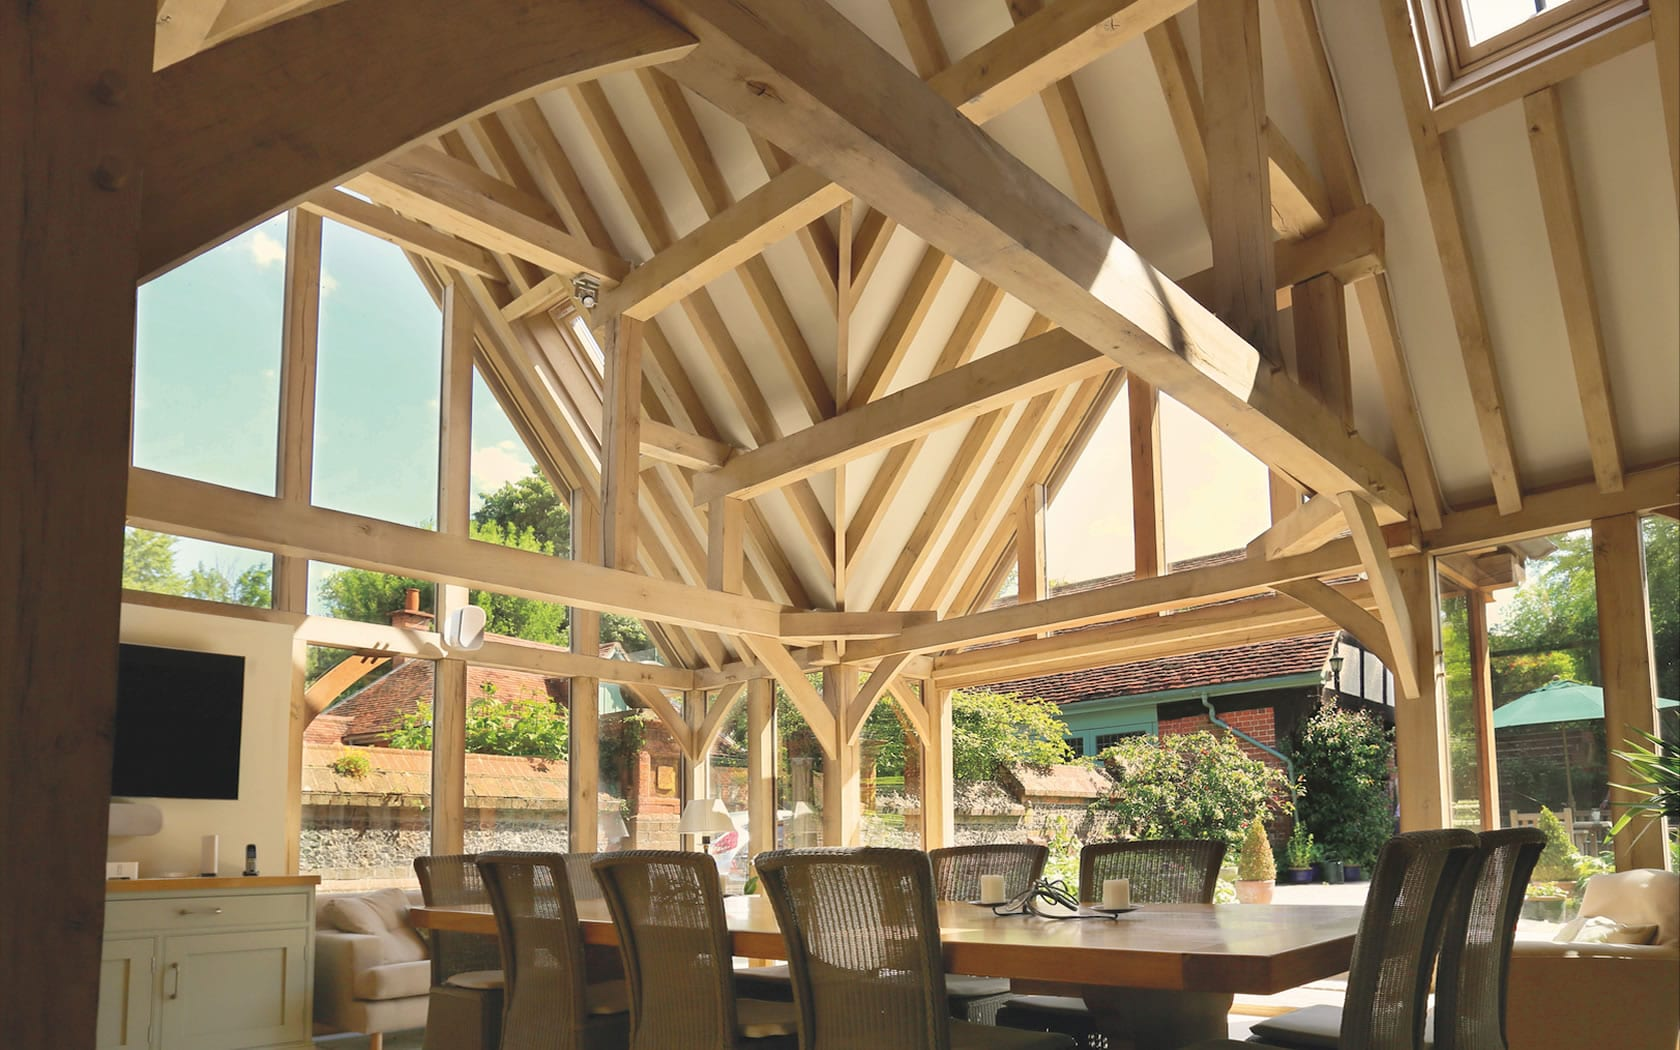 Interior View of an Oak Garden Room Project